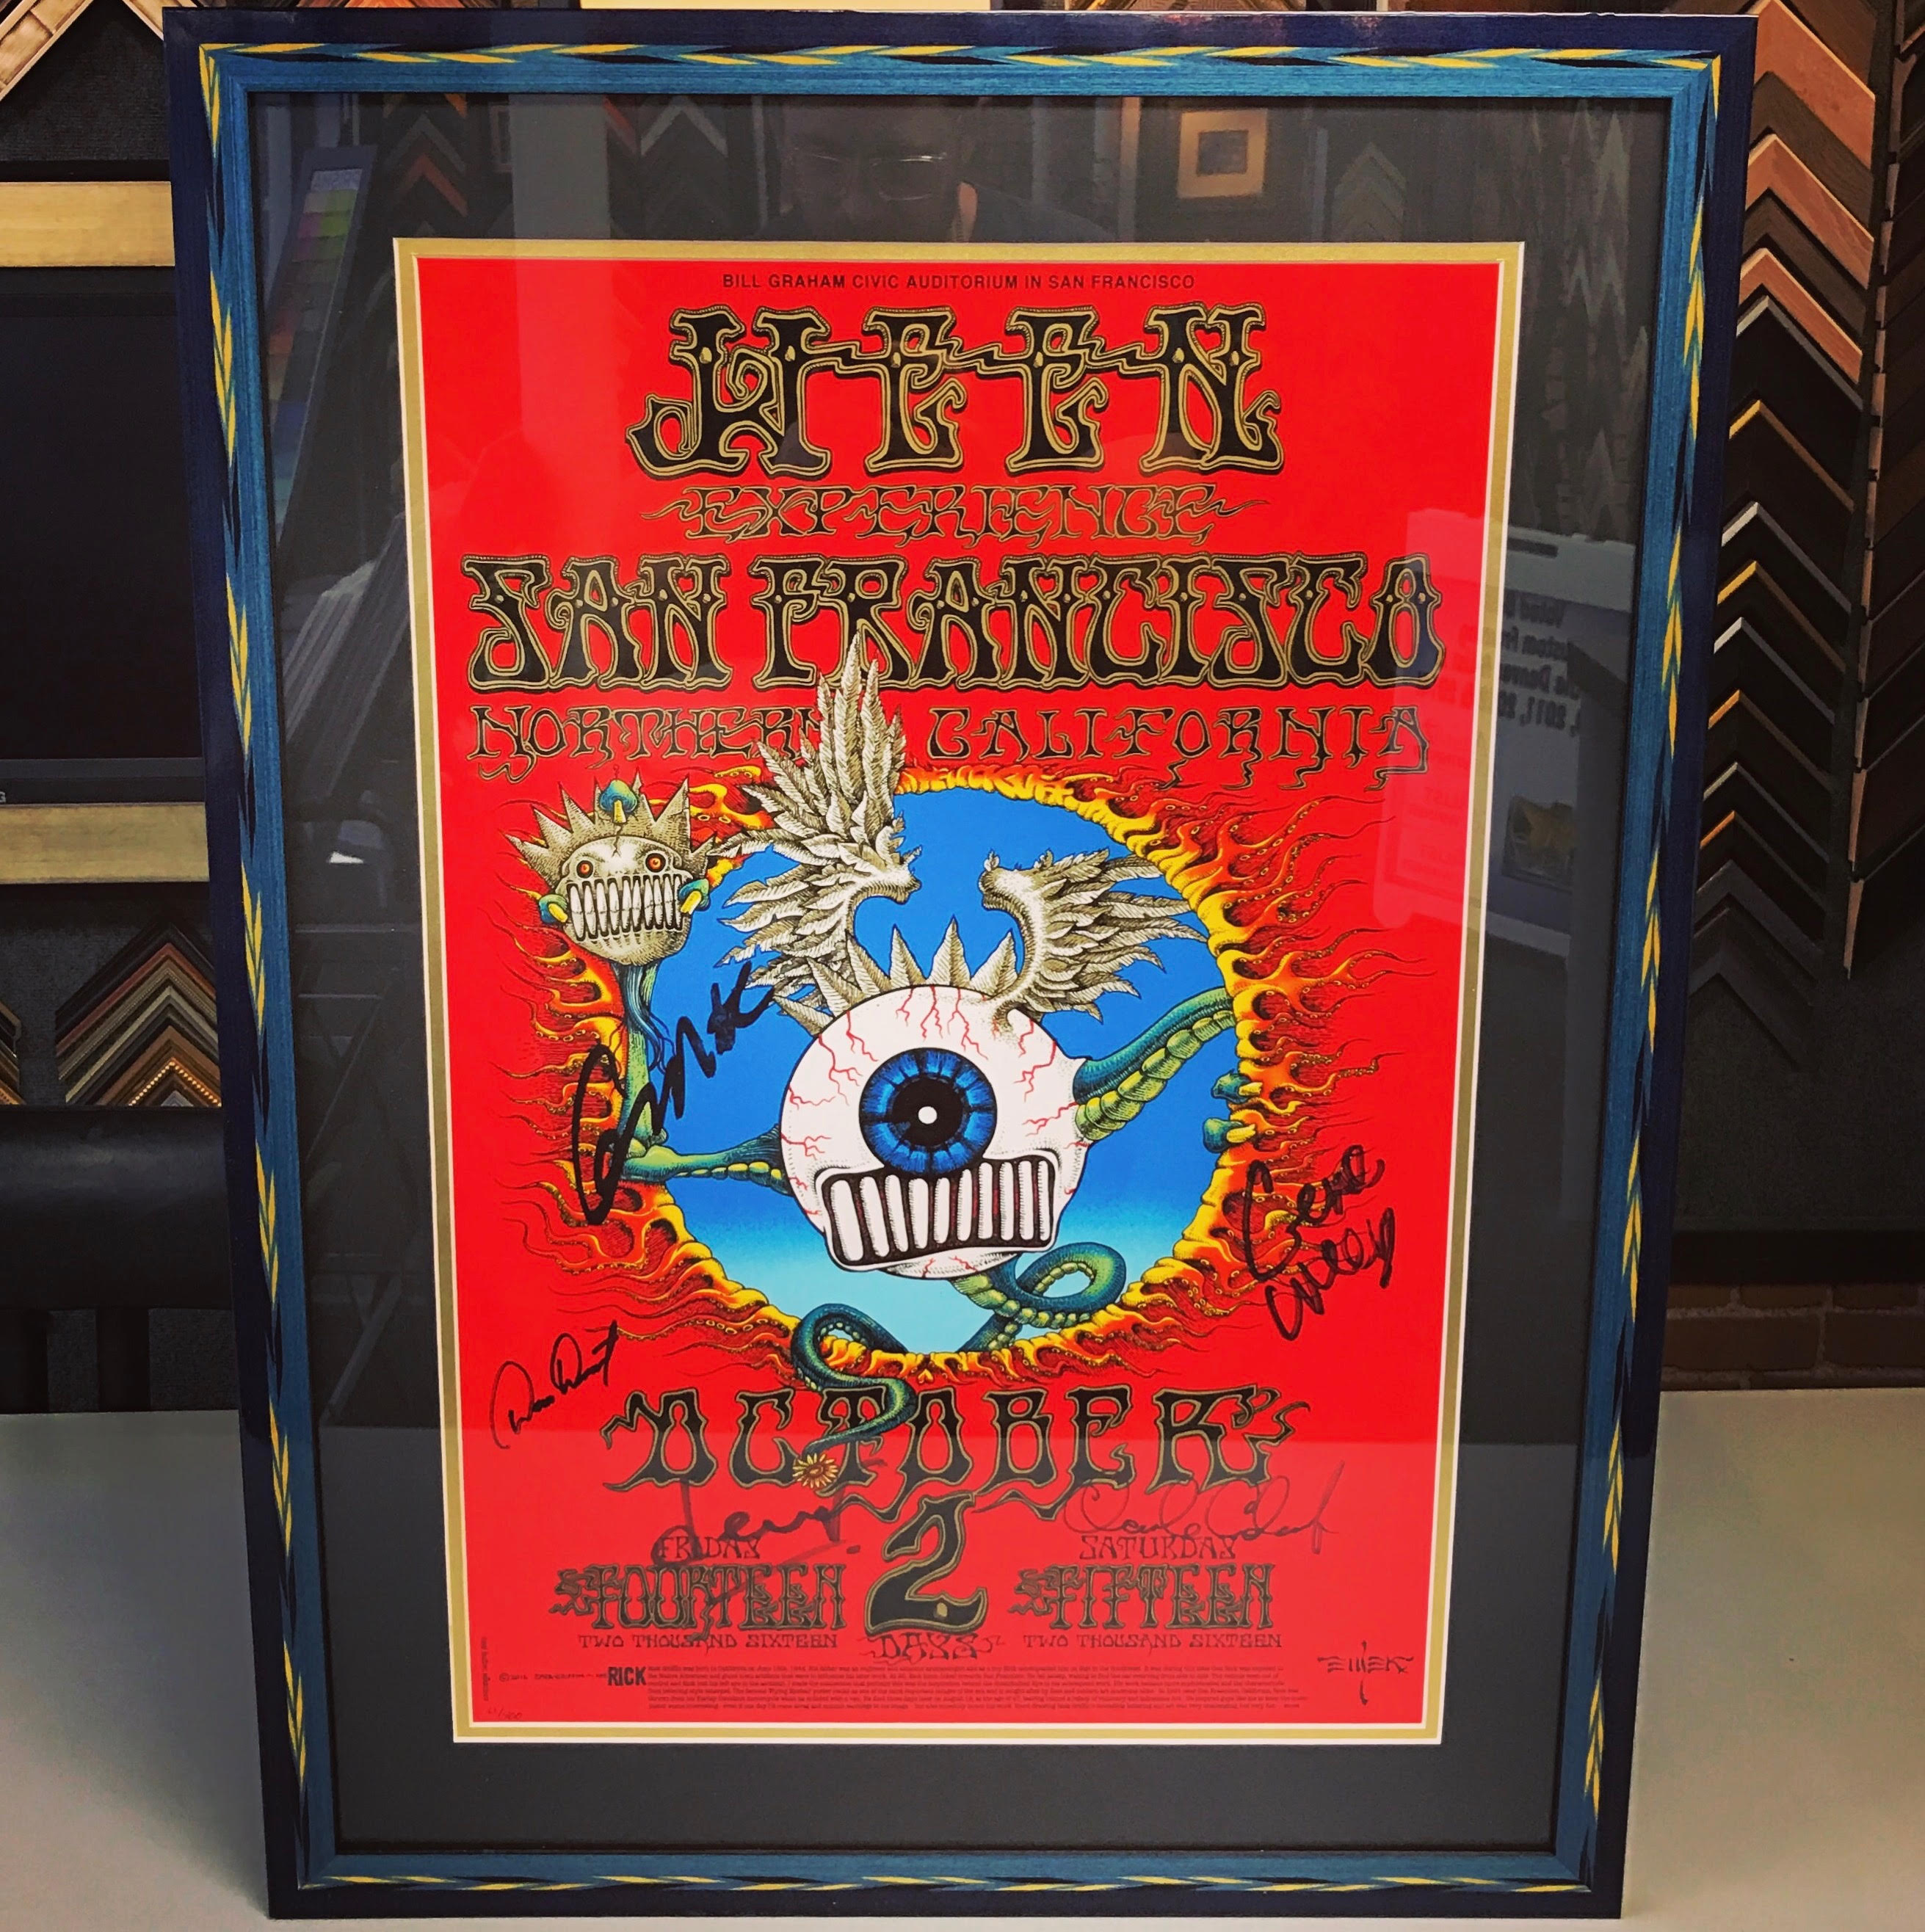 Custom Framed Concert Posters Denver